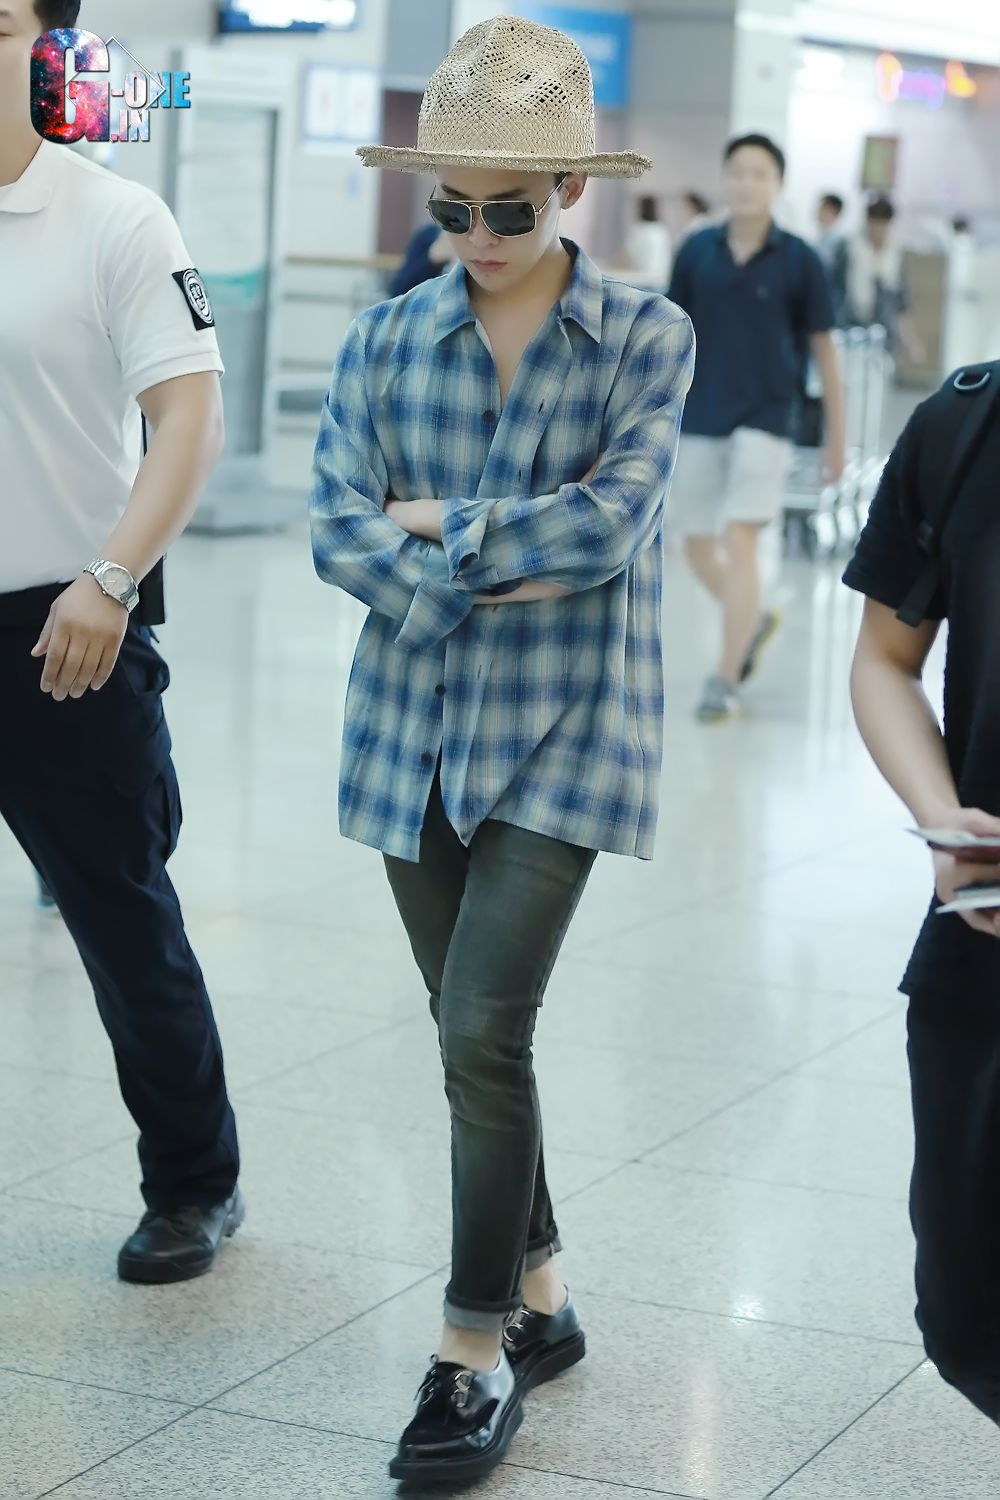 G-Dragon - Incheon Airport to Singapore 140912 | GD Style ...  G-Dragon - Inch...